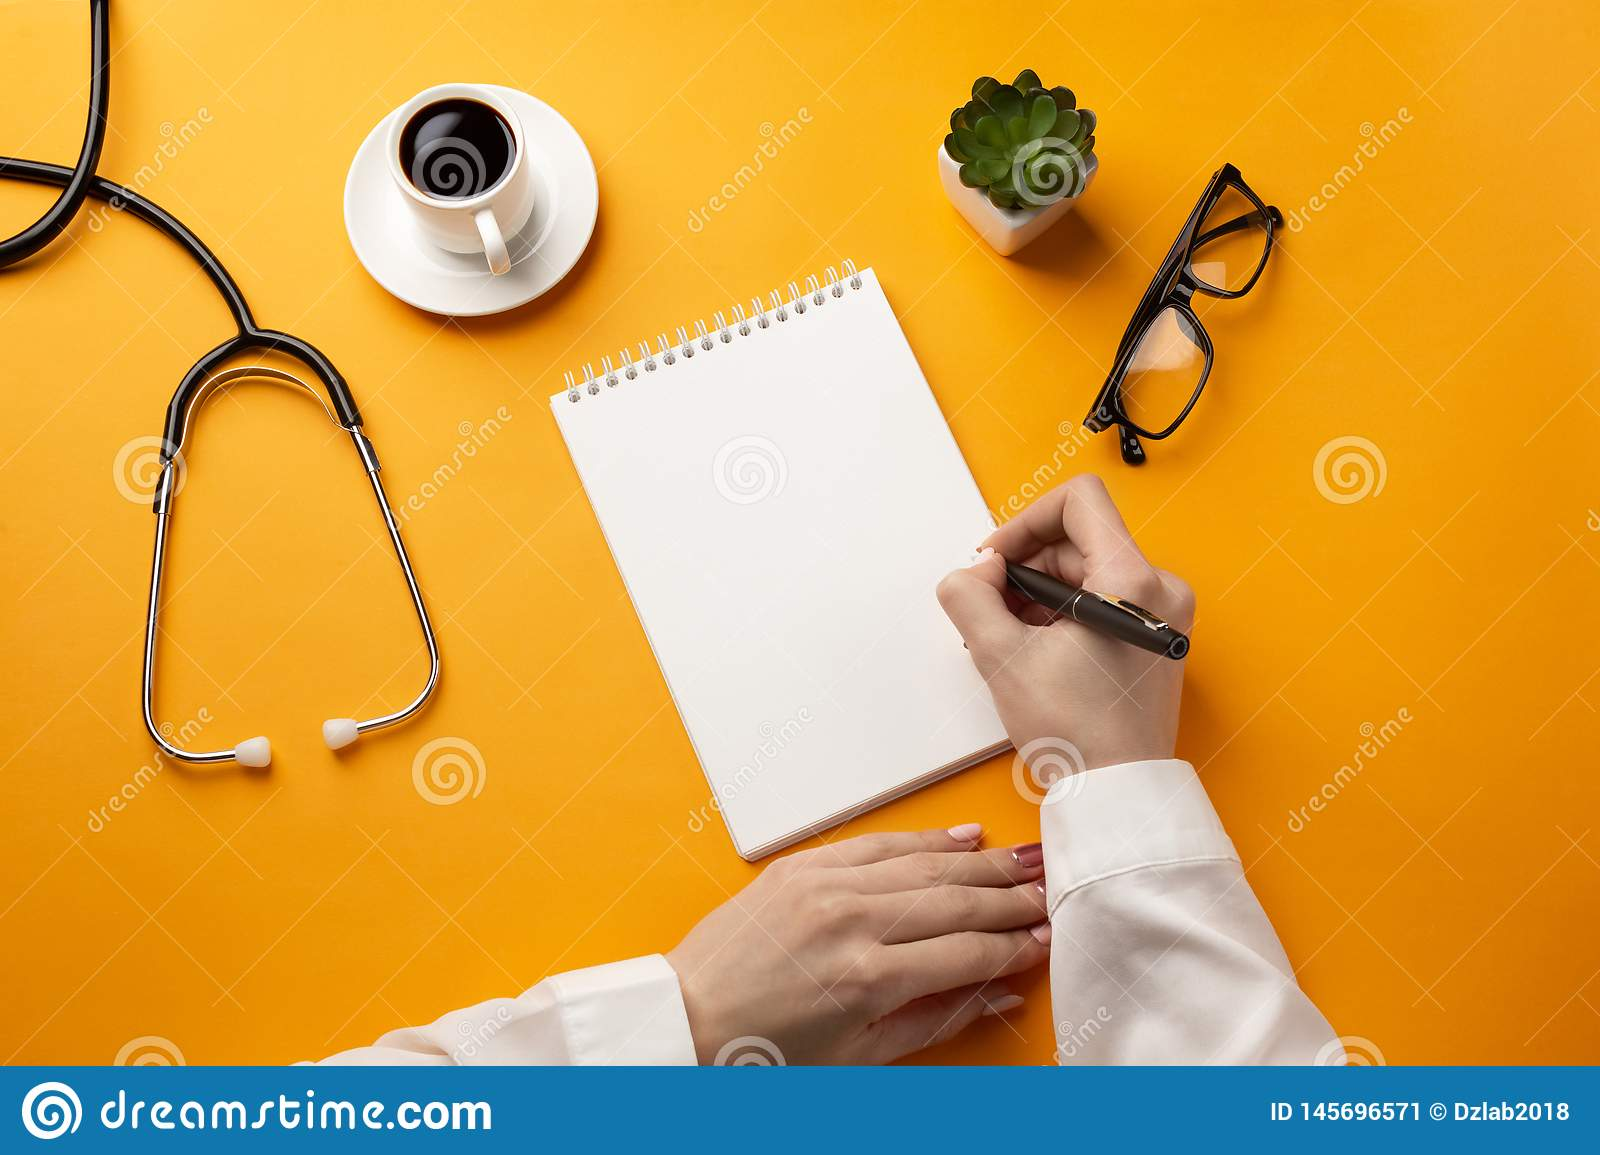 Professional doctor writing medical records in a notebook with stethoscope, coffee cup and glasses